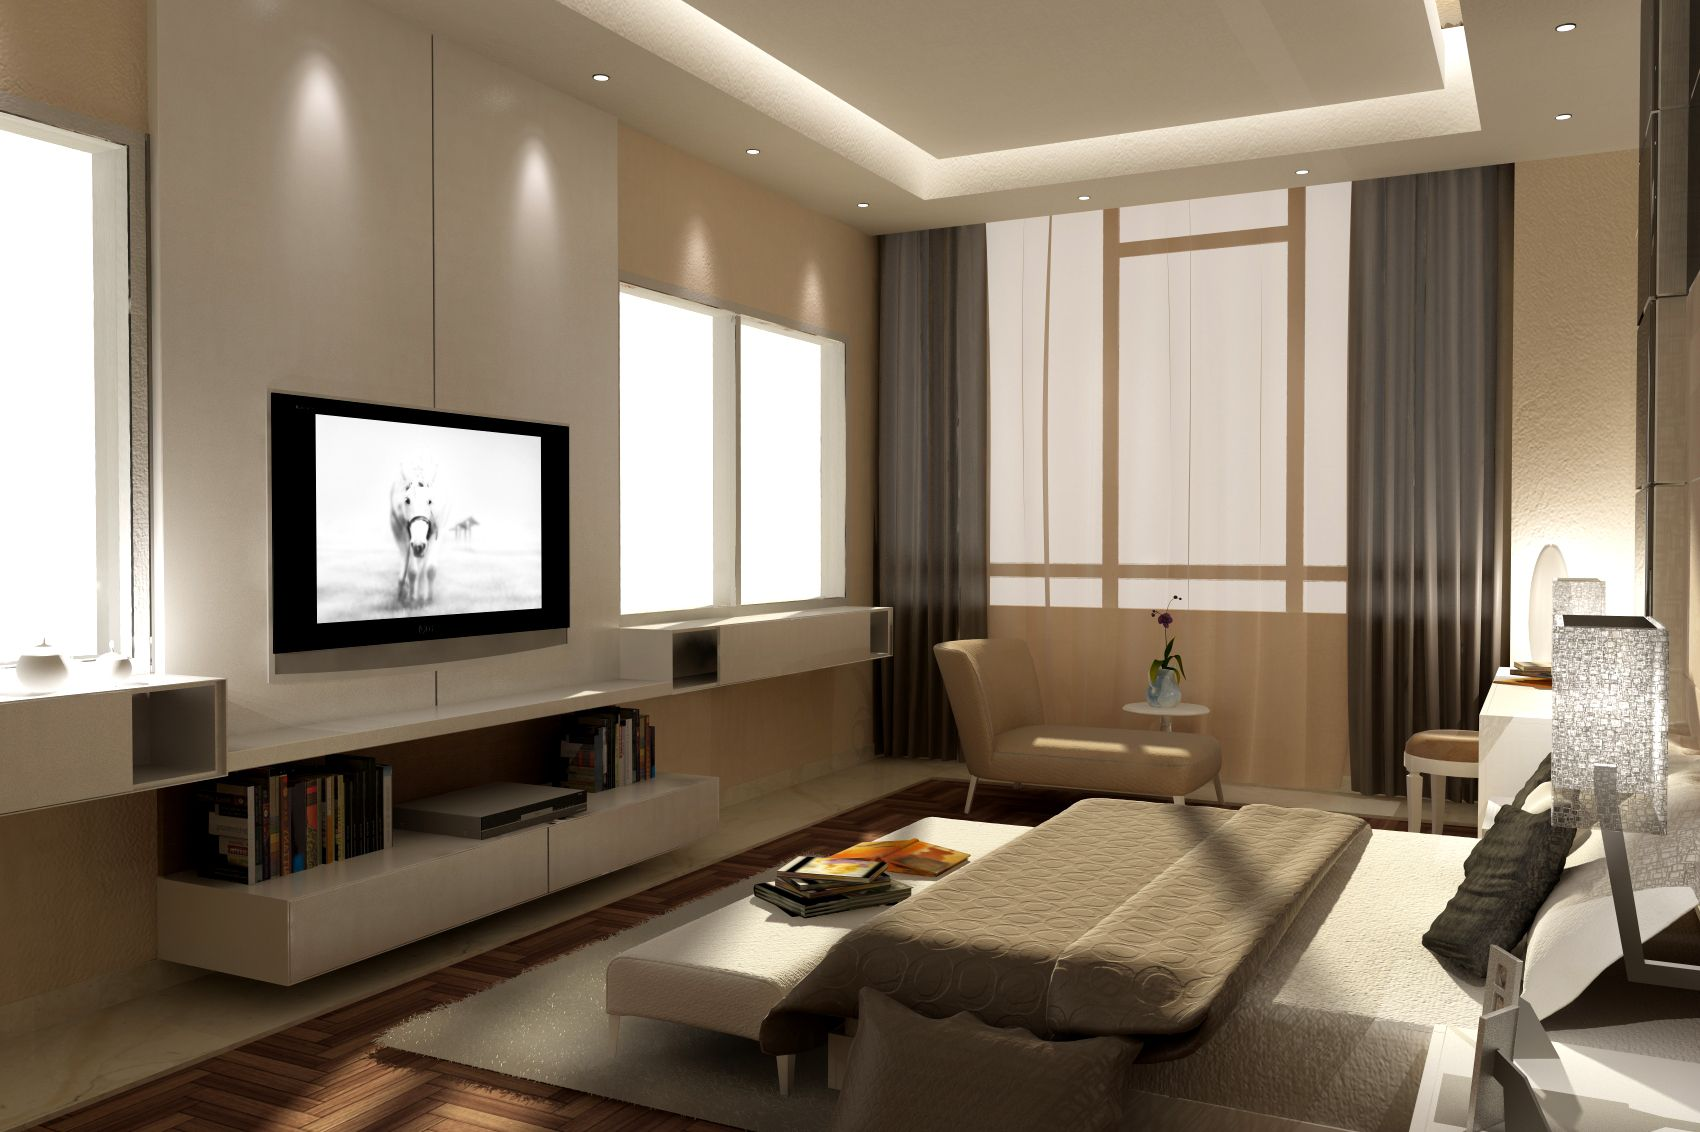 Bedroom modern bedroom interior design 3d max 3d for Bedroom modern design